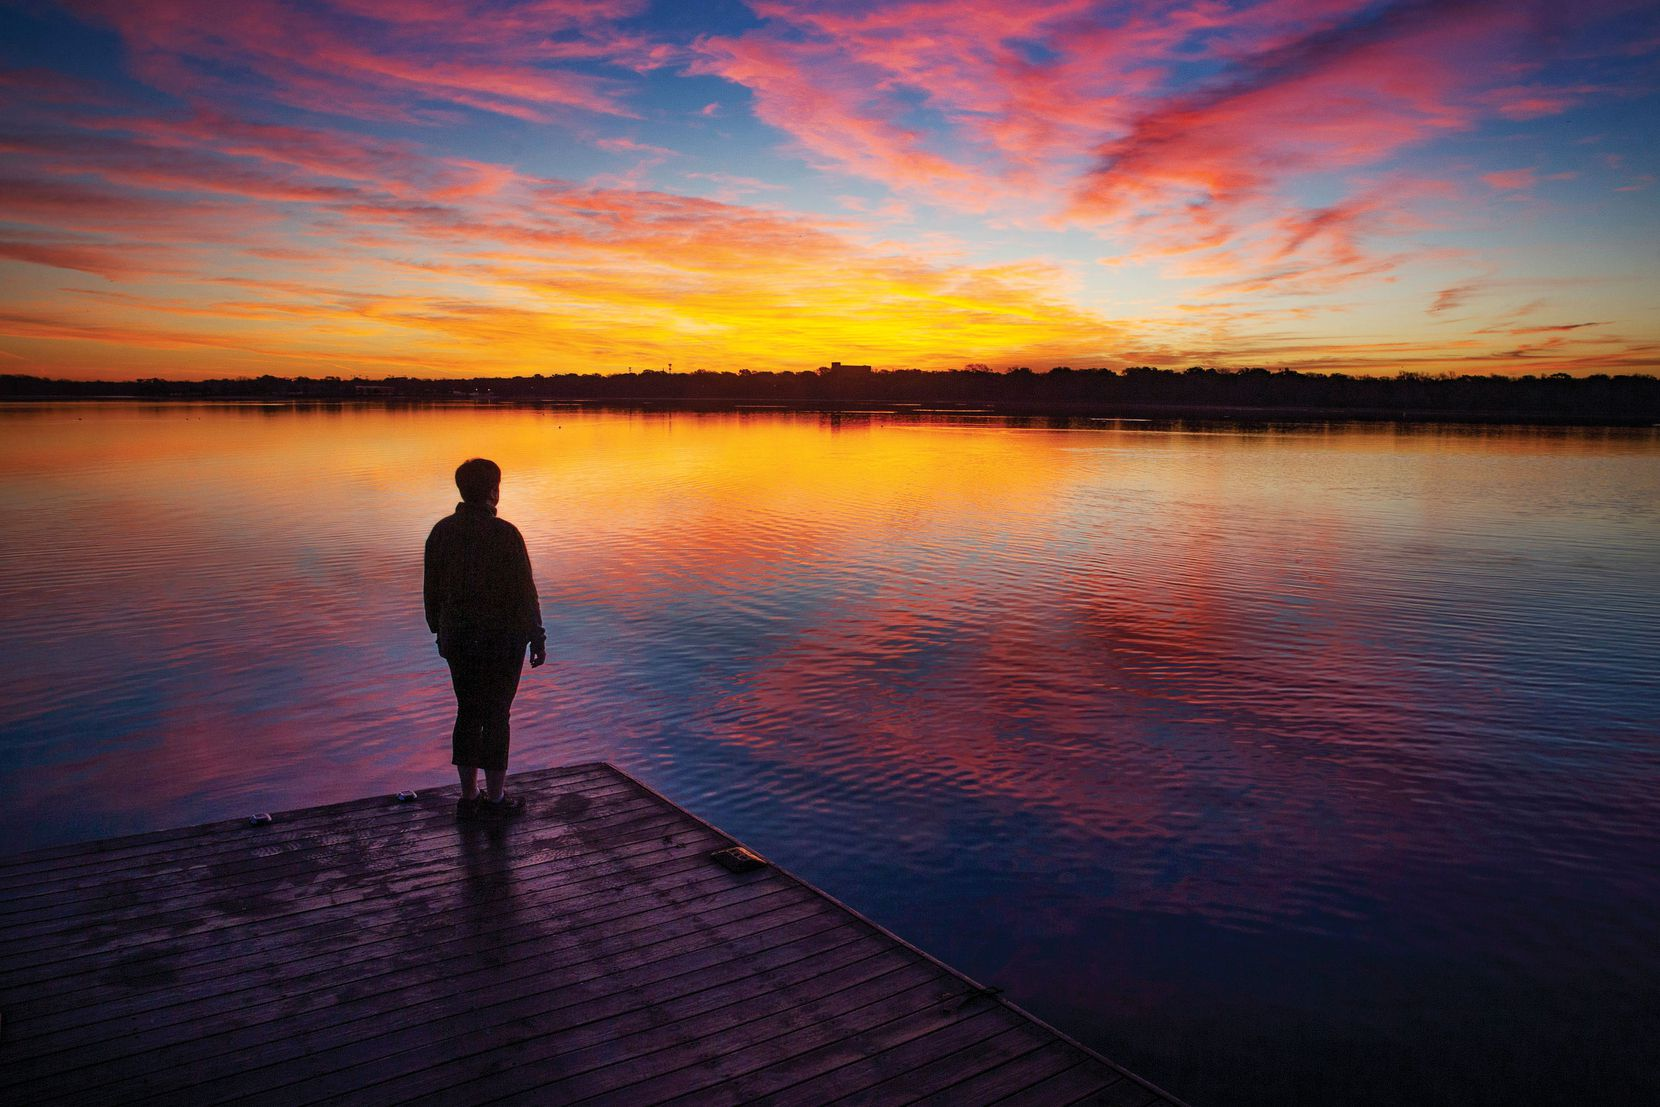 """Amy Hofland, a survivor of thyroid cancer, stands before the sunrise over White Rock Lake in Dallas during the early morning rush hour on Wednesday, March 25, 2020. Hofland has been taking sunrise photos since 2011 as part of her journey to healing from cancer, and she hopes to compile her archive into a book for cancer patients. """"When you're going through cancer, this is what you run towards. Another beginning,"""" Hofland said of Wednesday's sunrise."""